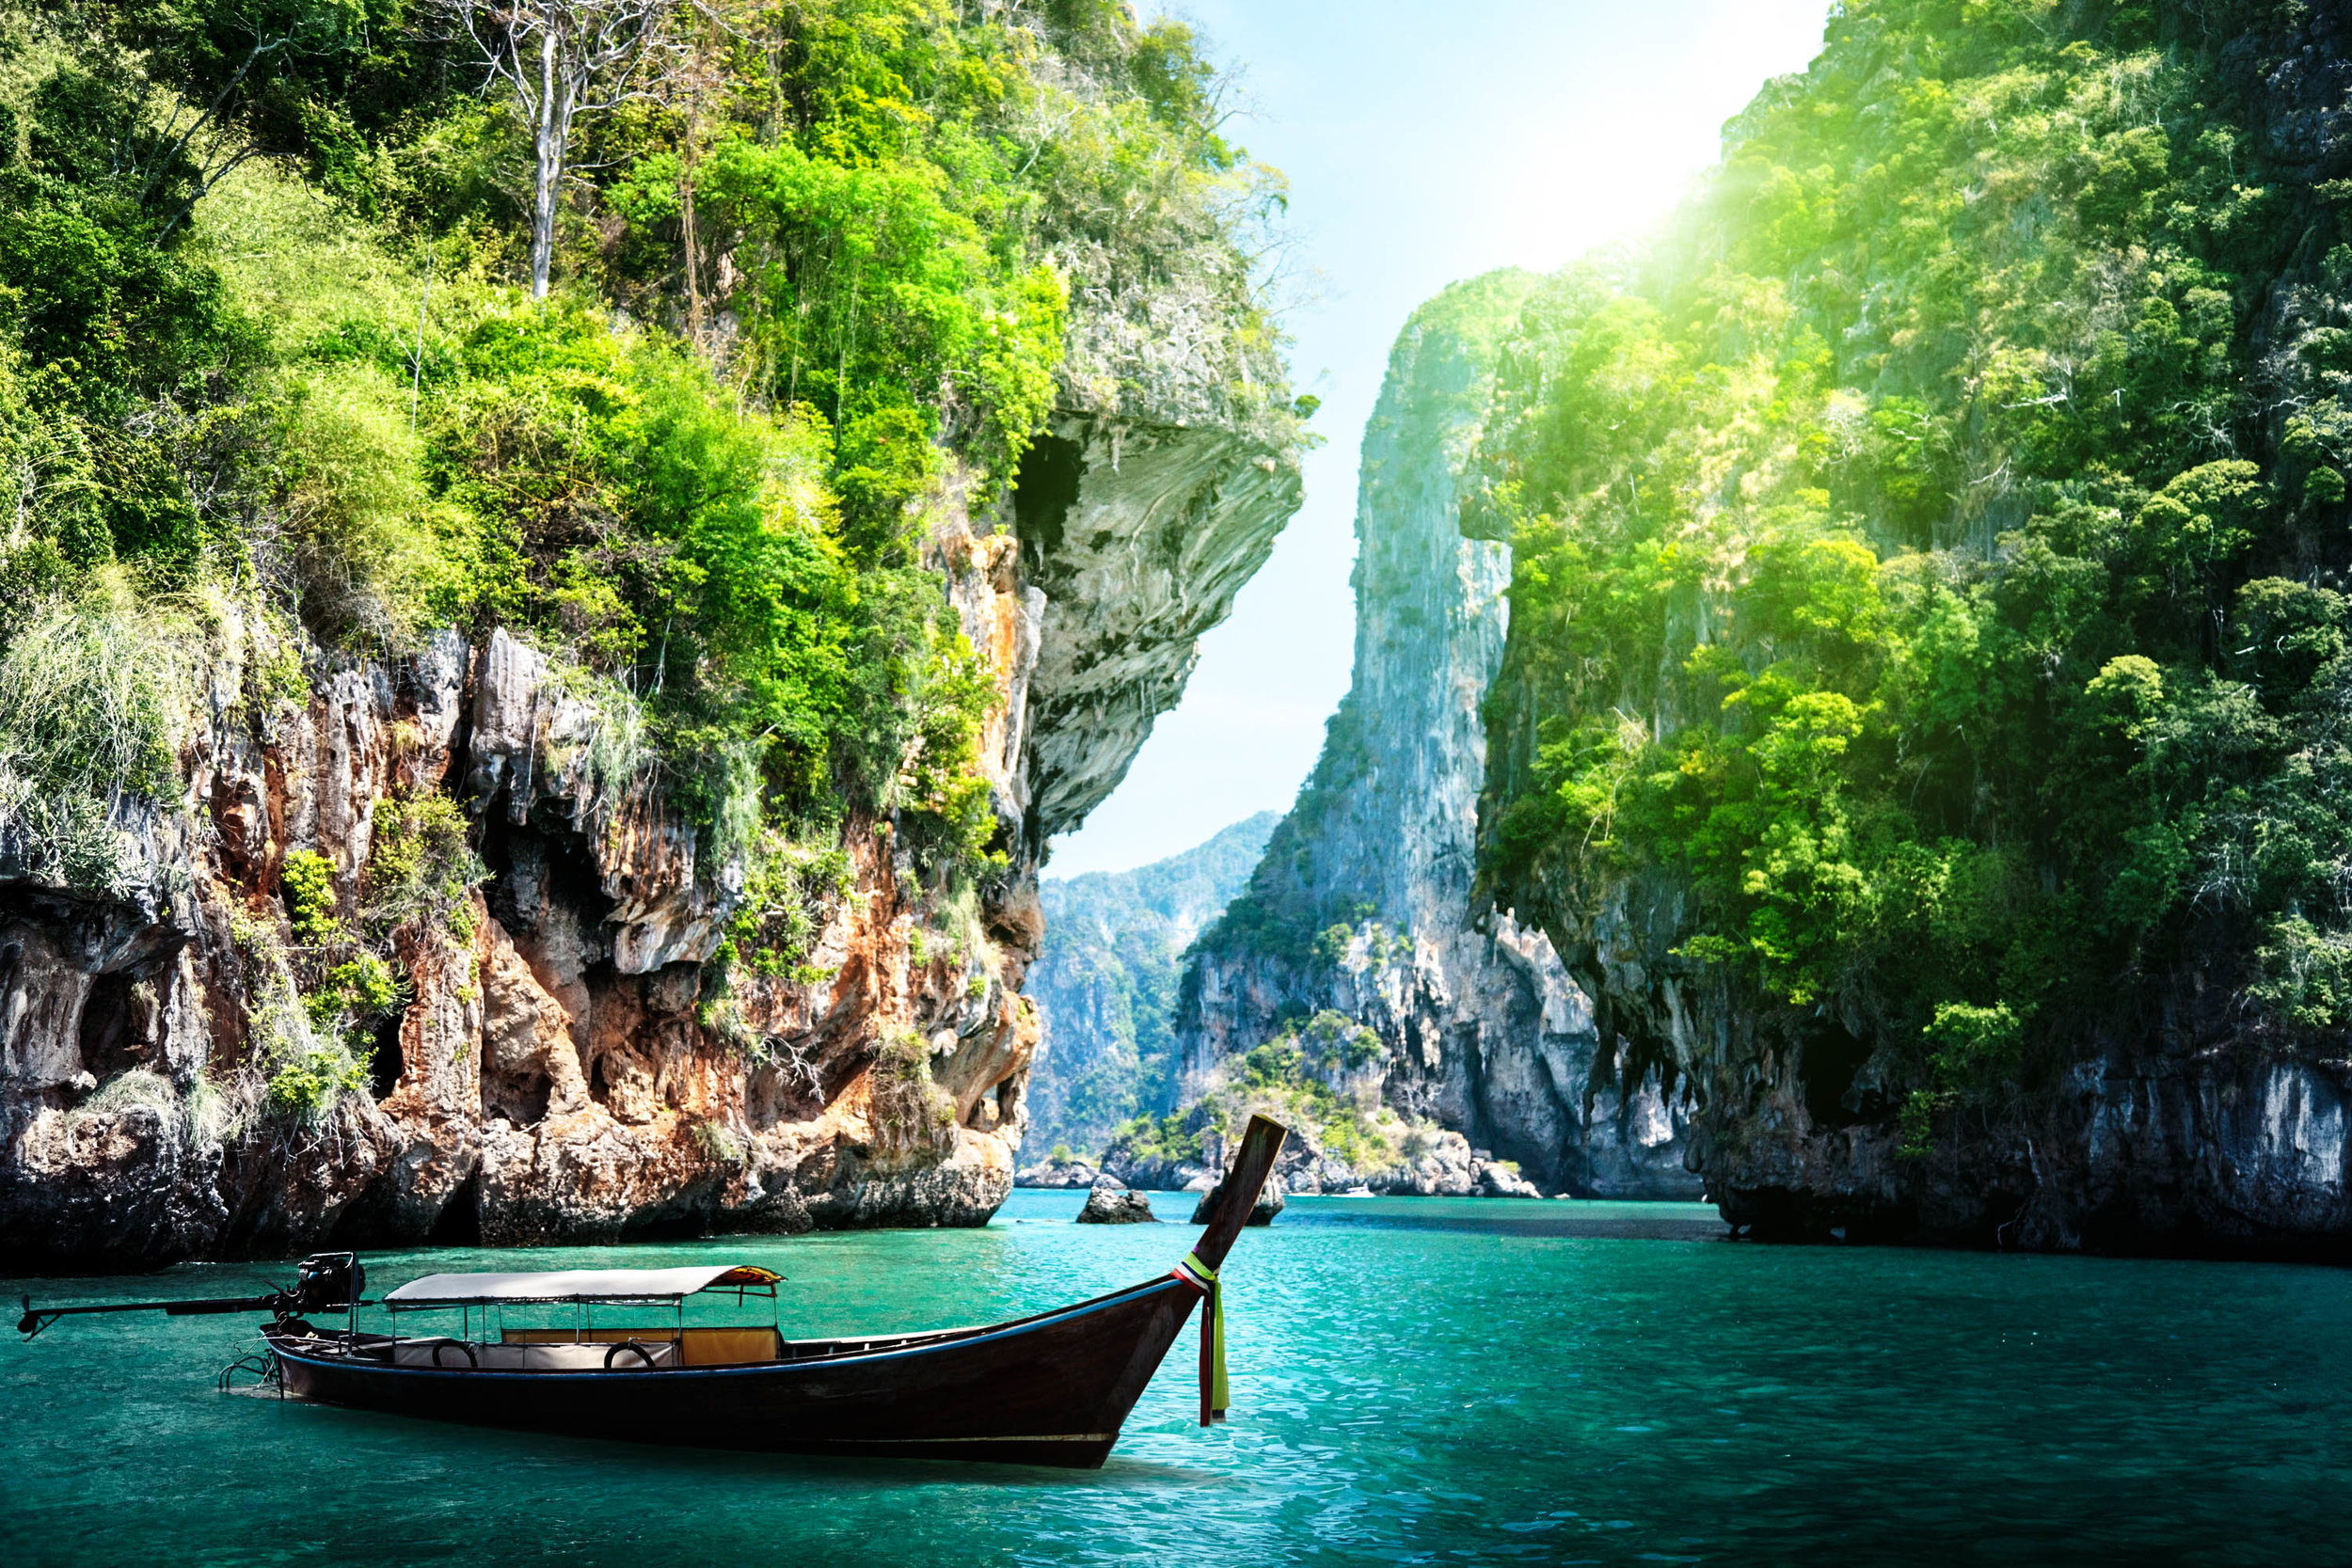 long-boat-and-rocks-on-railay-beach-in-Krabi-Thailand-shutterstock_125319602-2.jpg